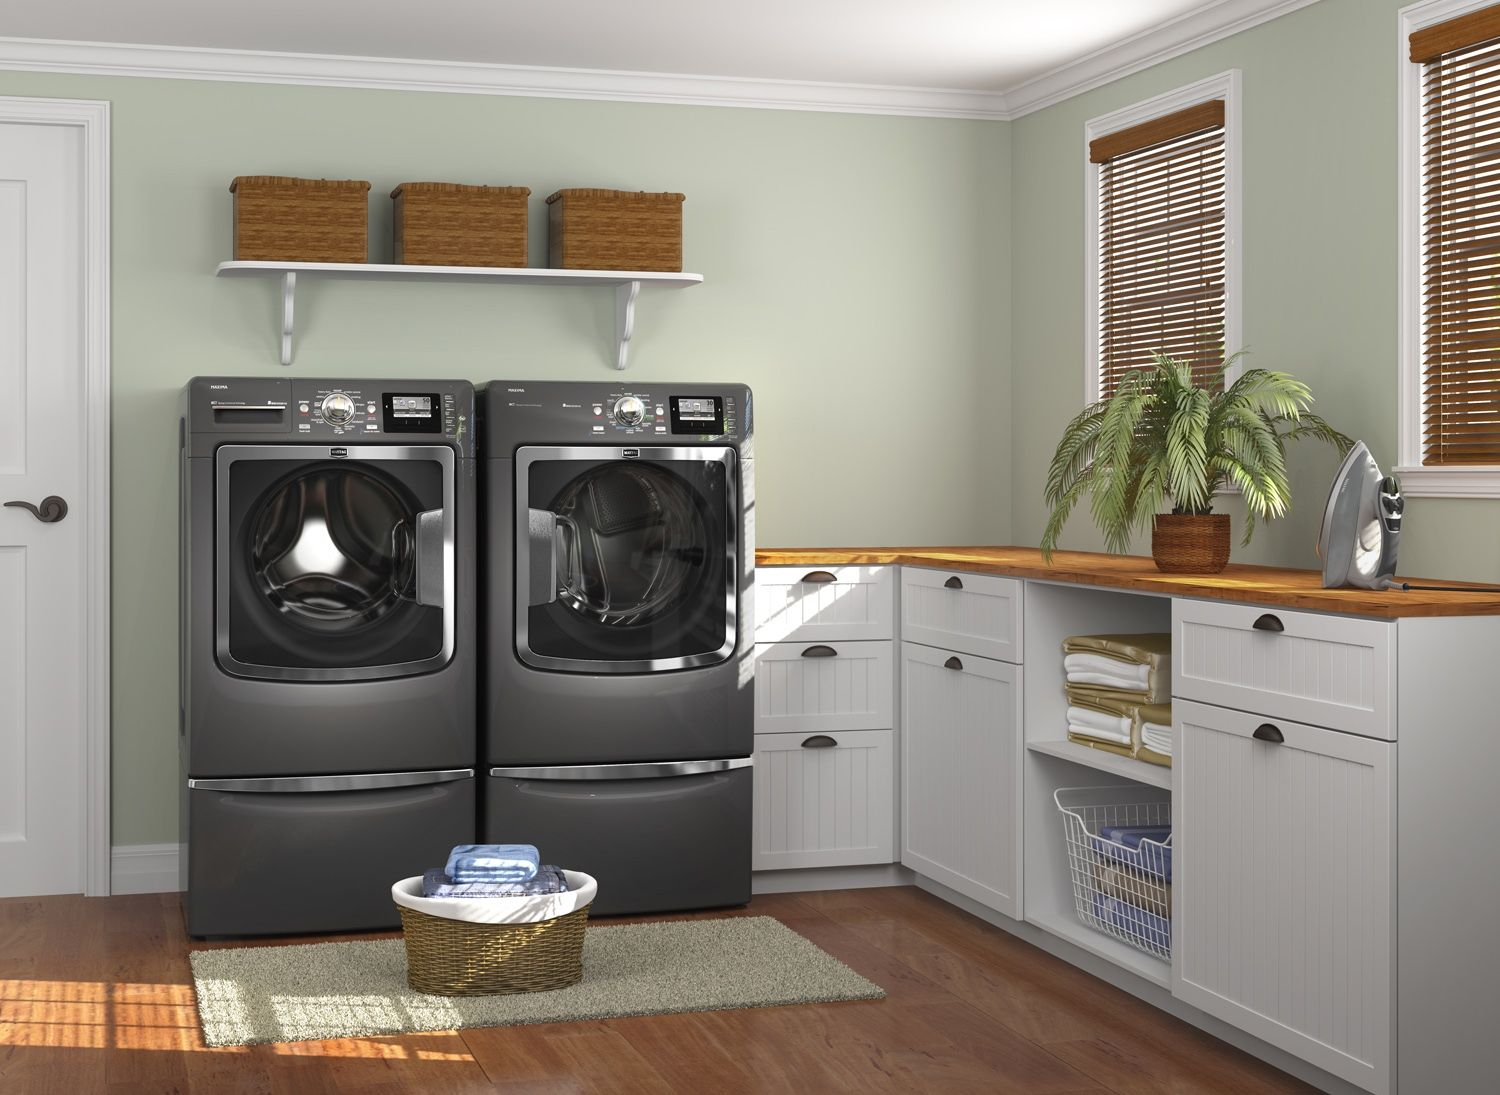 best images about laundry room ideas on pinterest laundry kitchen laundry room design - Utility Room Design Ideas